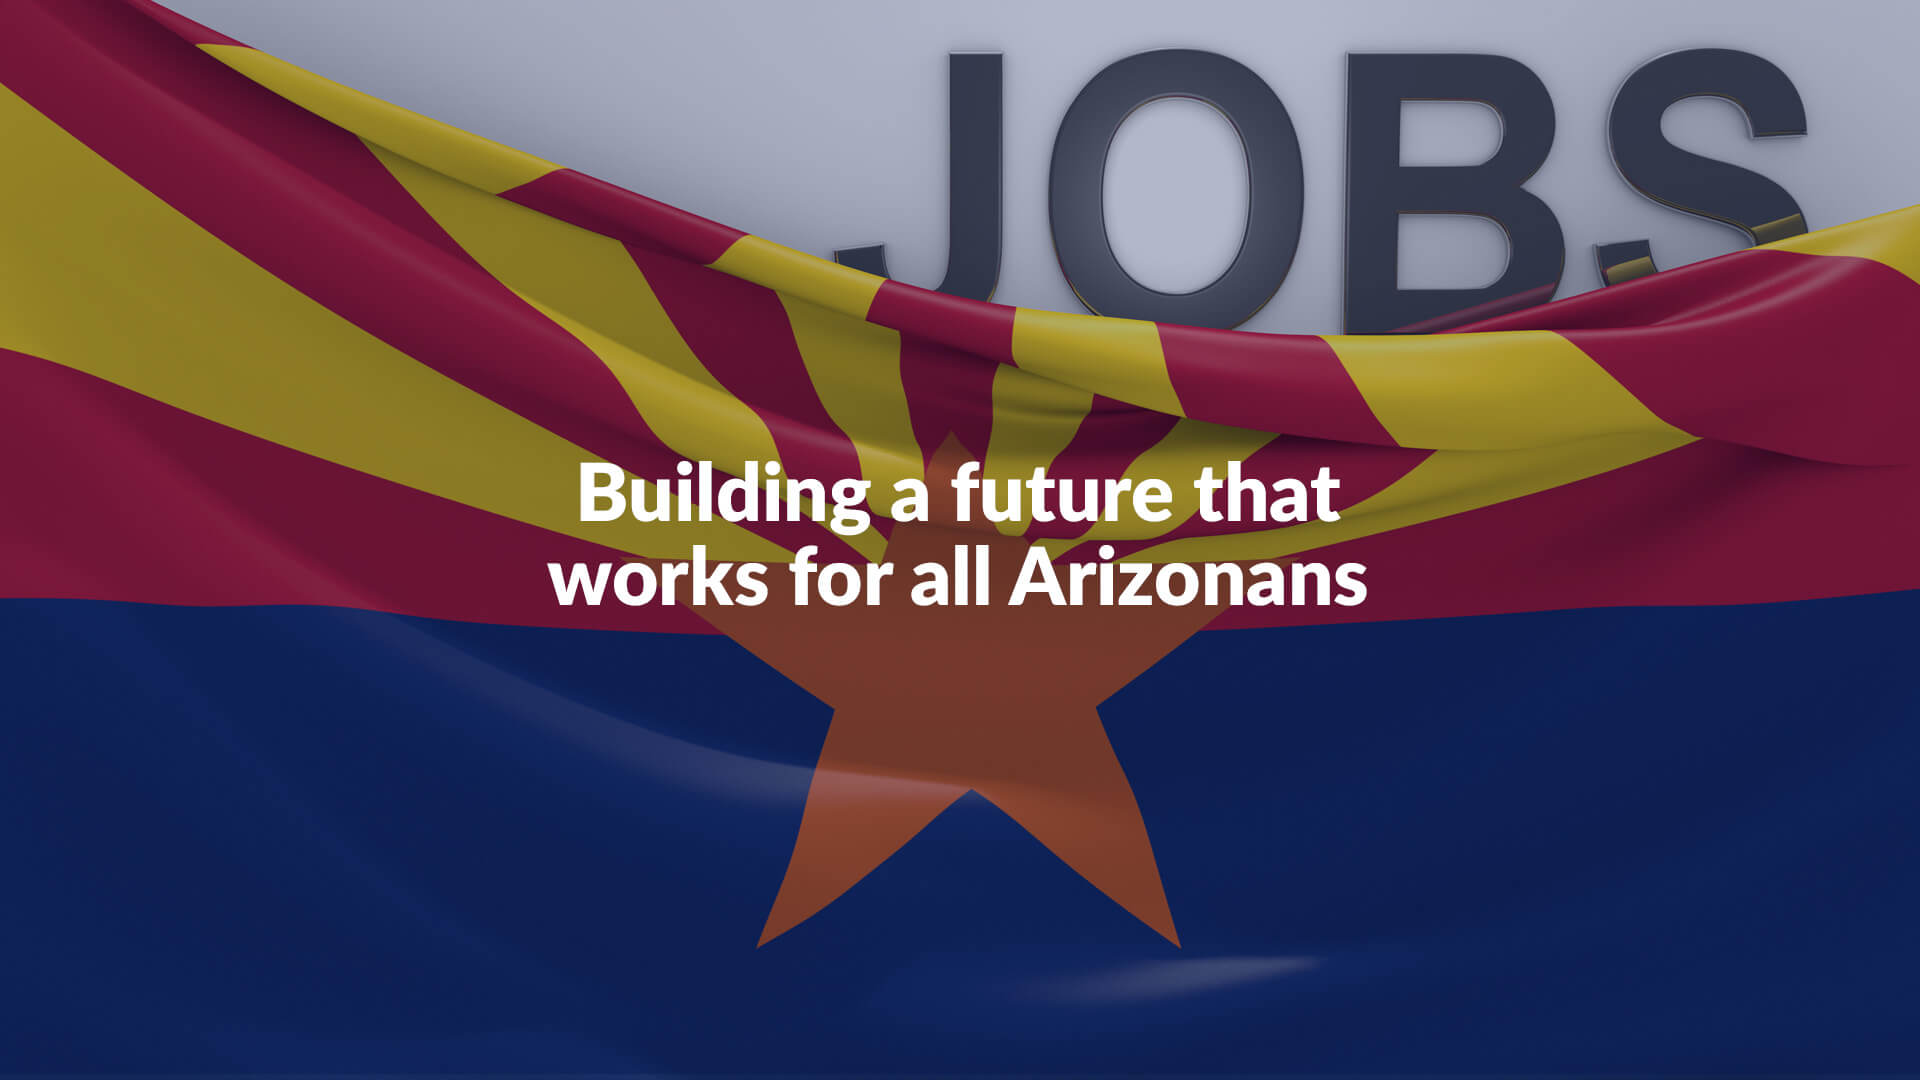 Arizona Center for Economic Progress